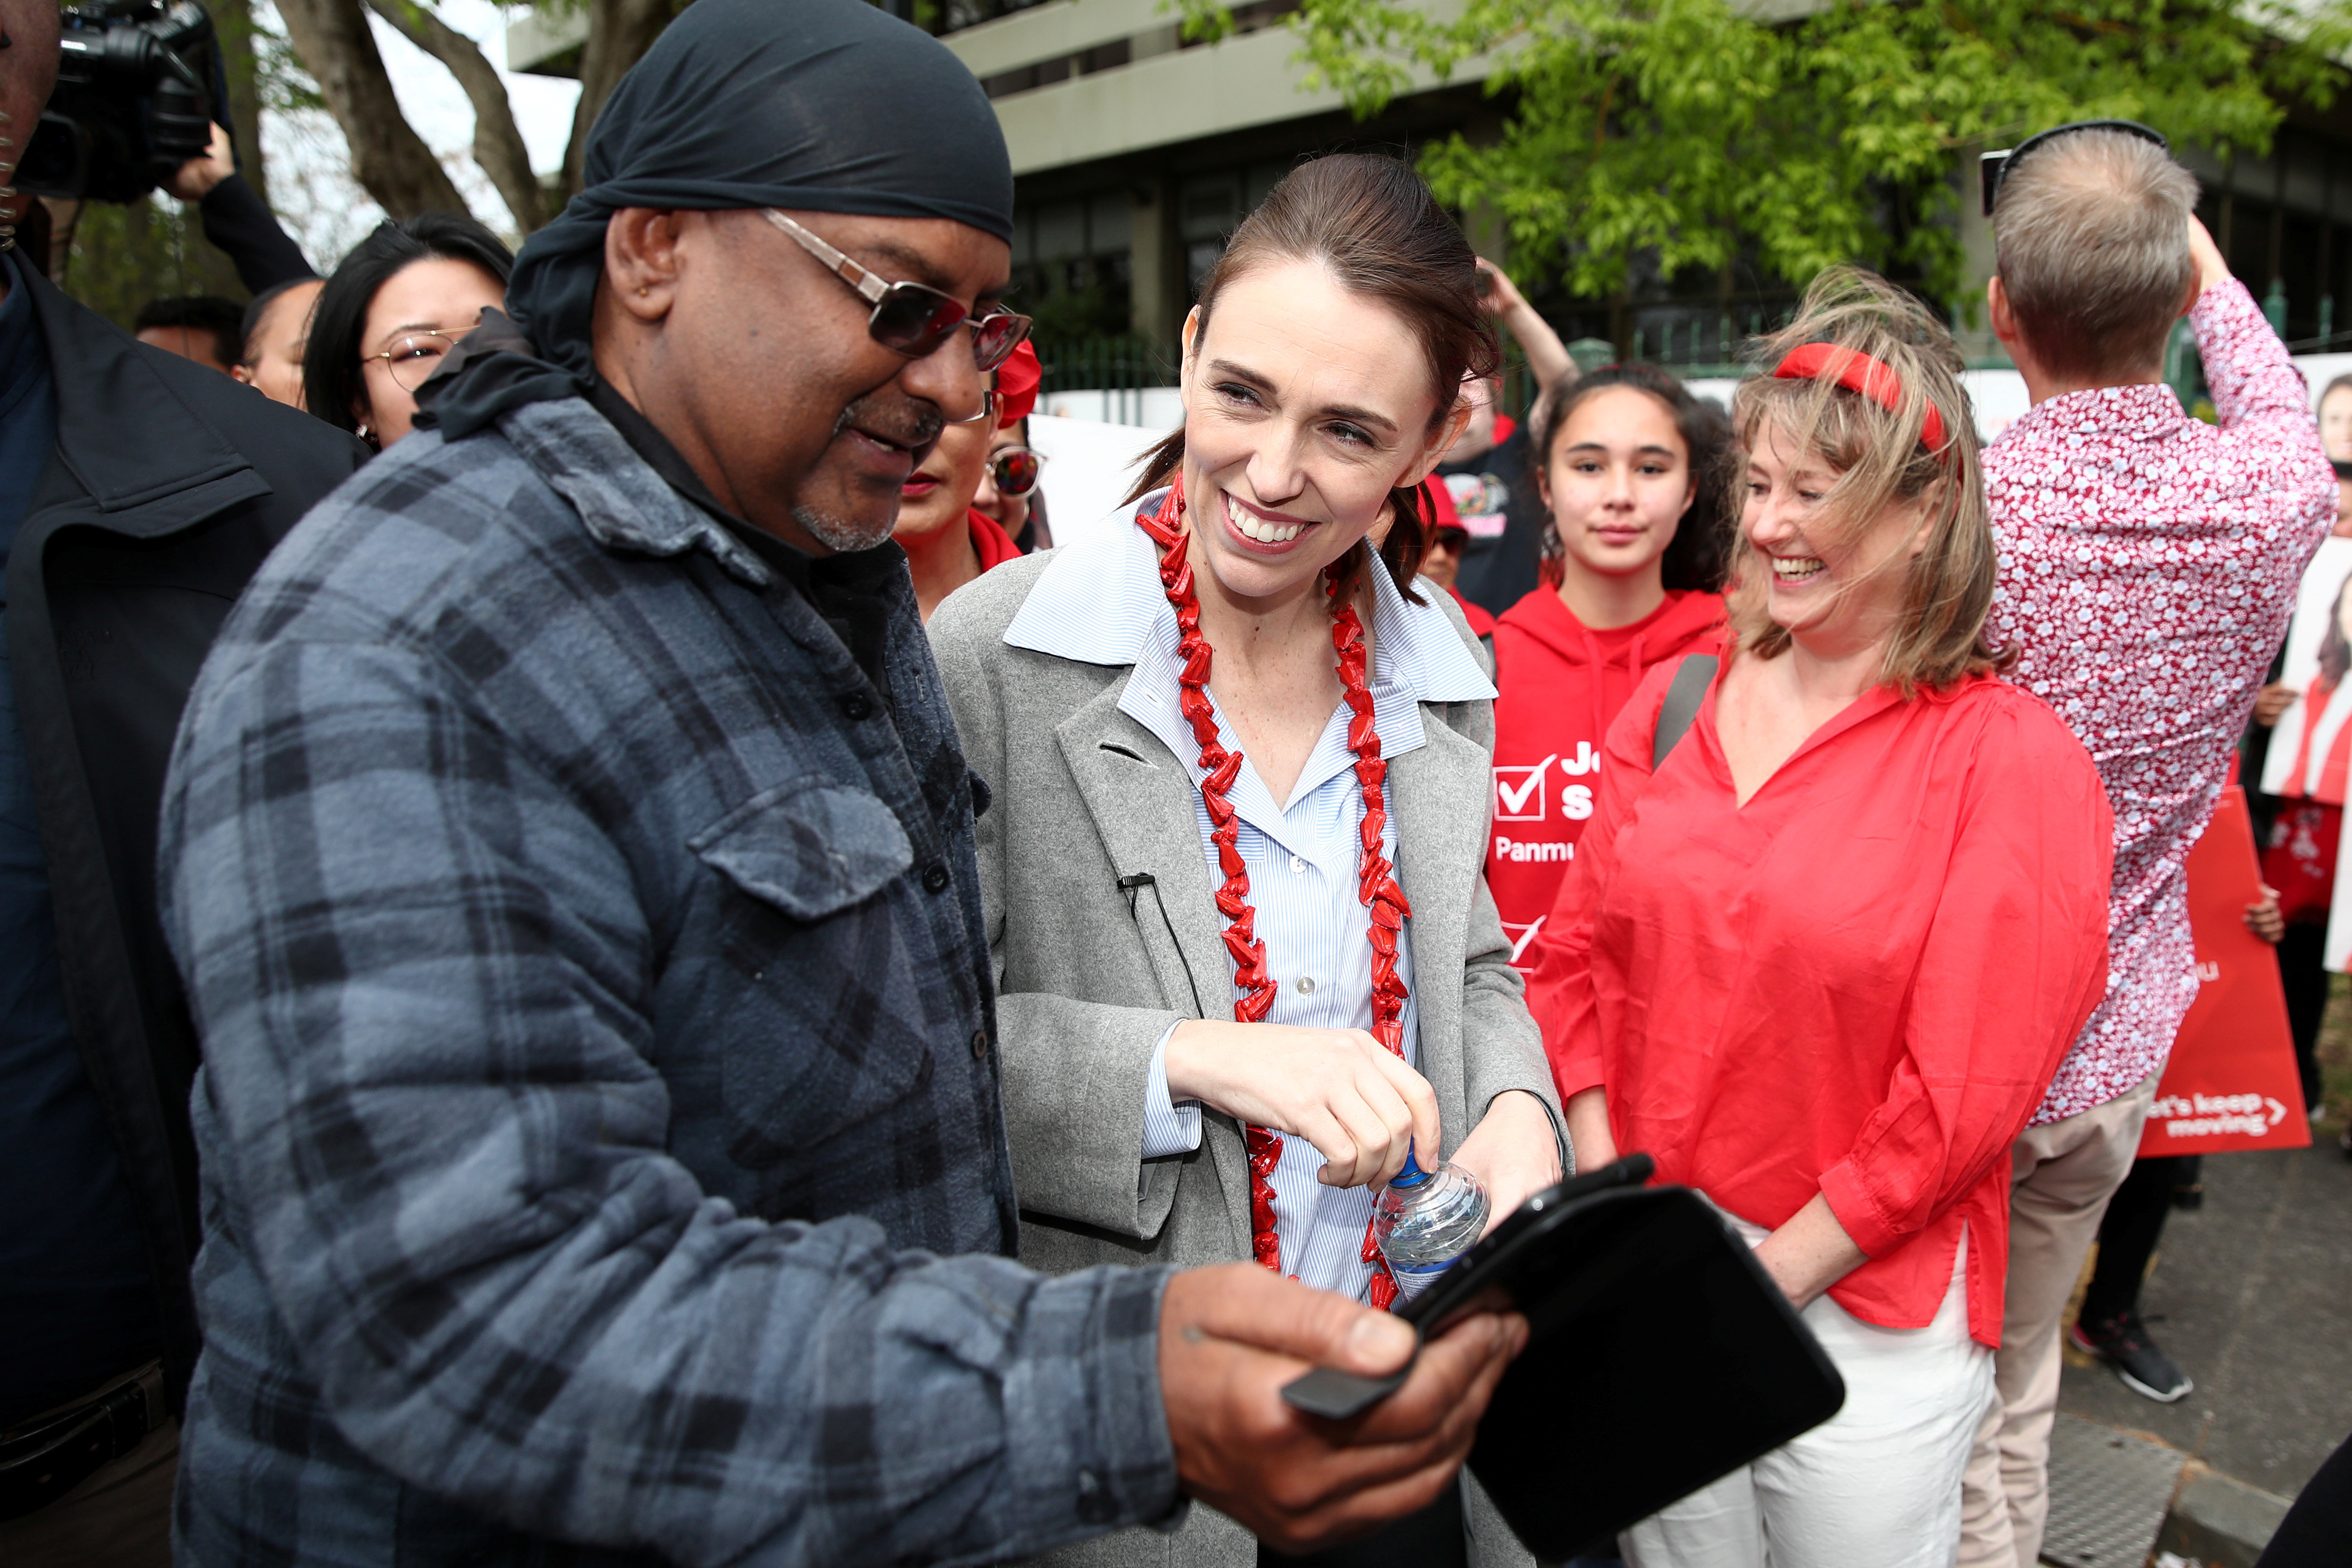 New Zealand's Prime Minister Jacinda Ardern greets memebers of the public in Auckland, New Zealand